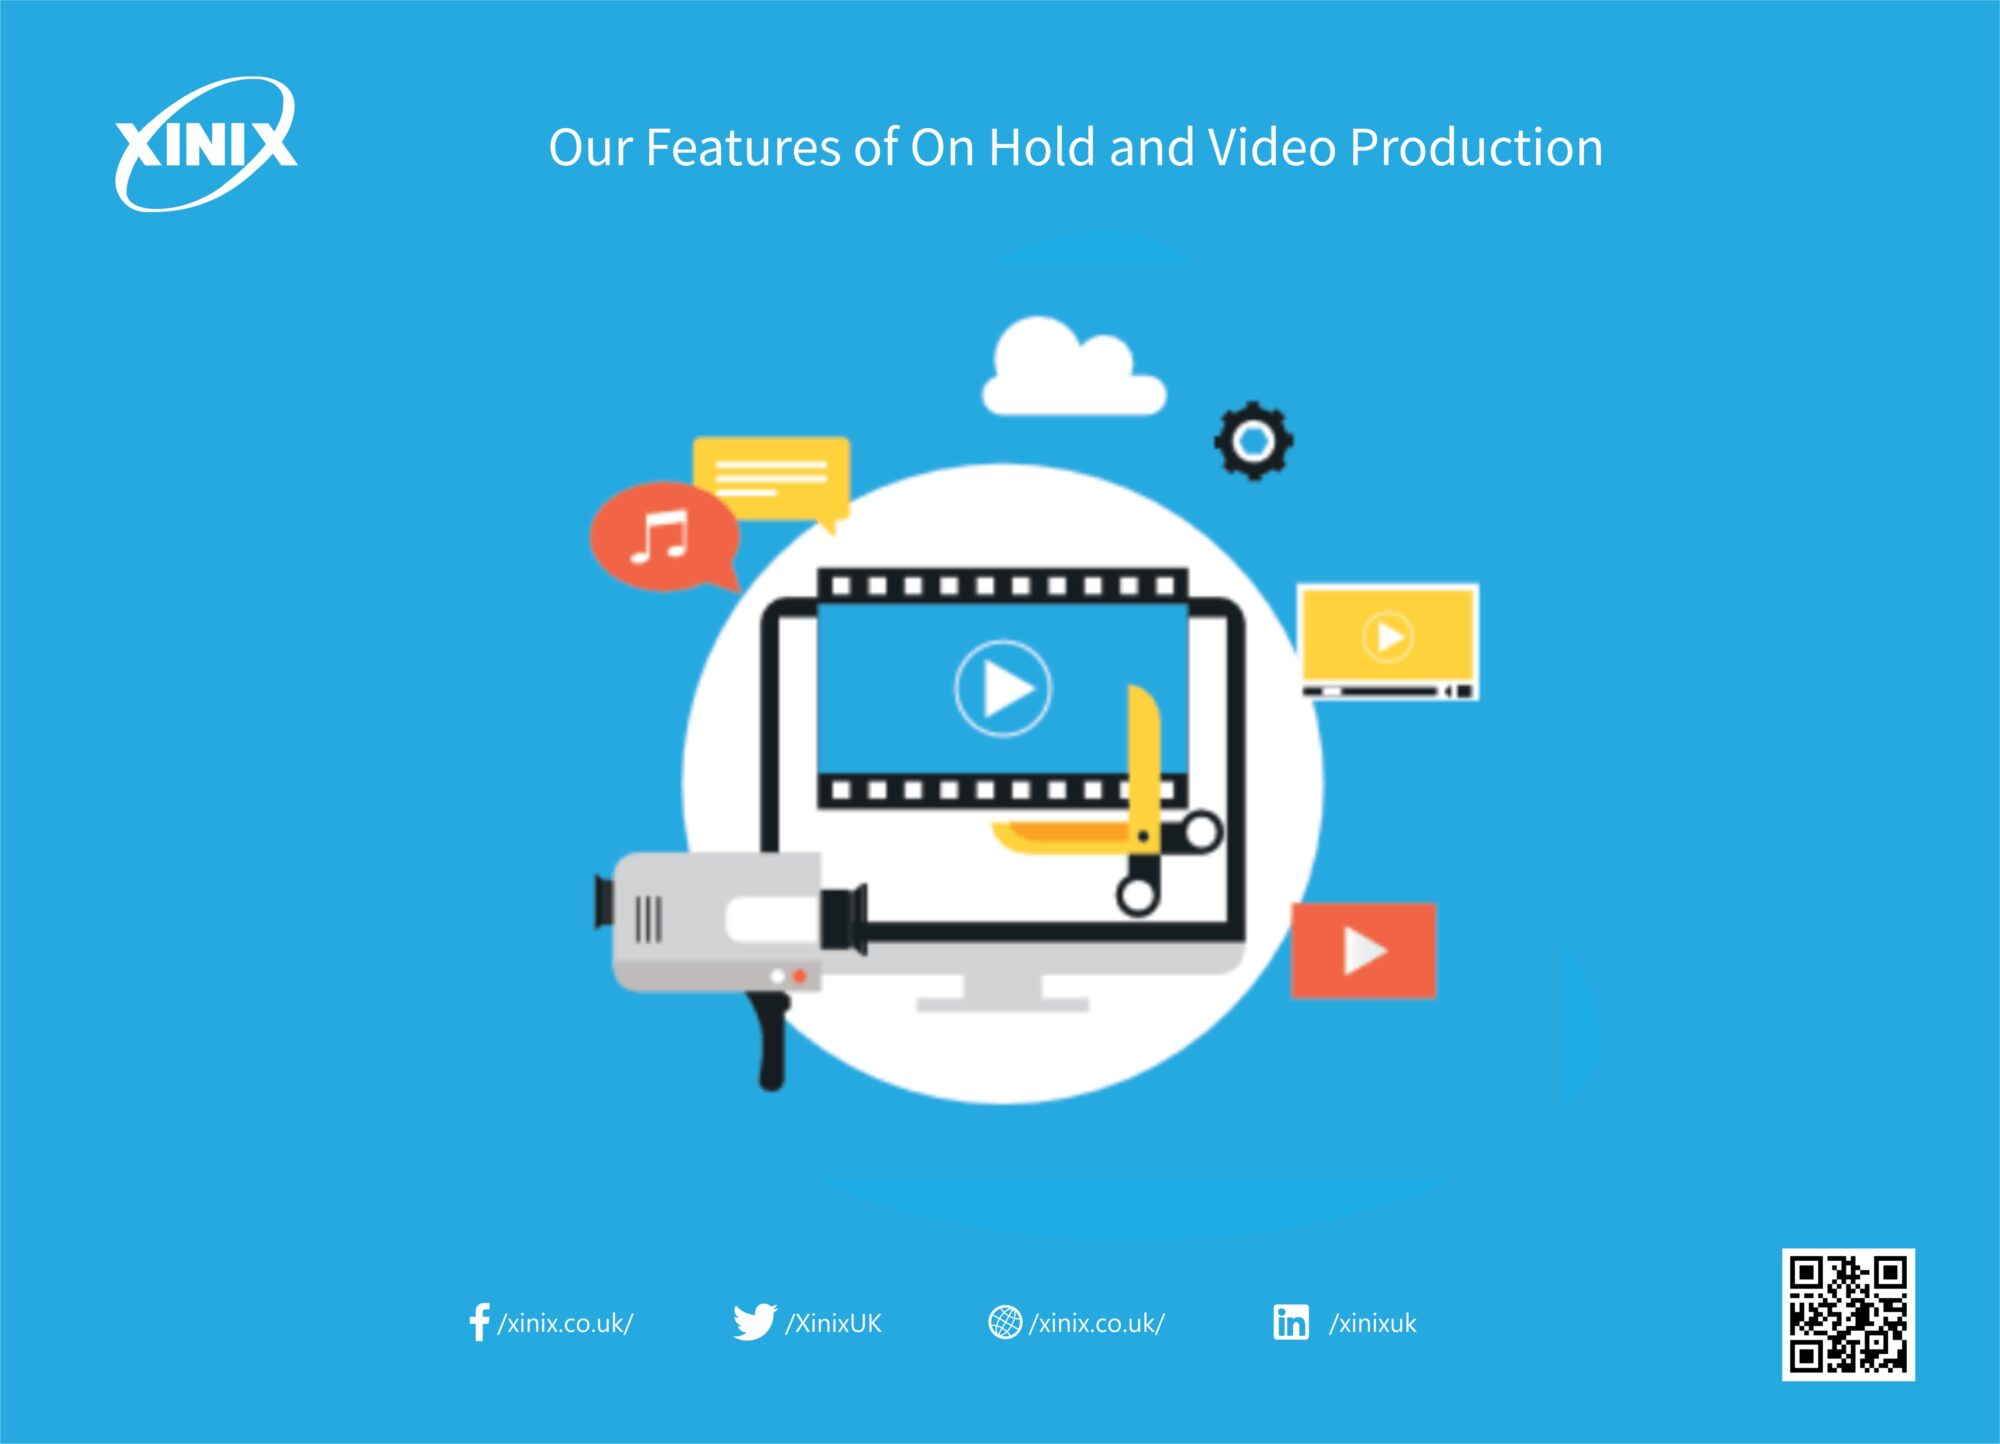 Our Features of On Hold and Video Production